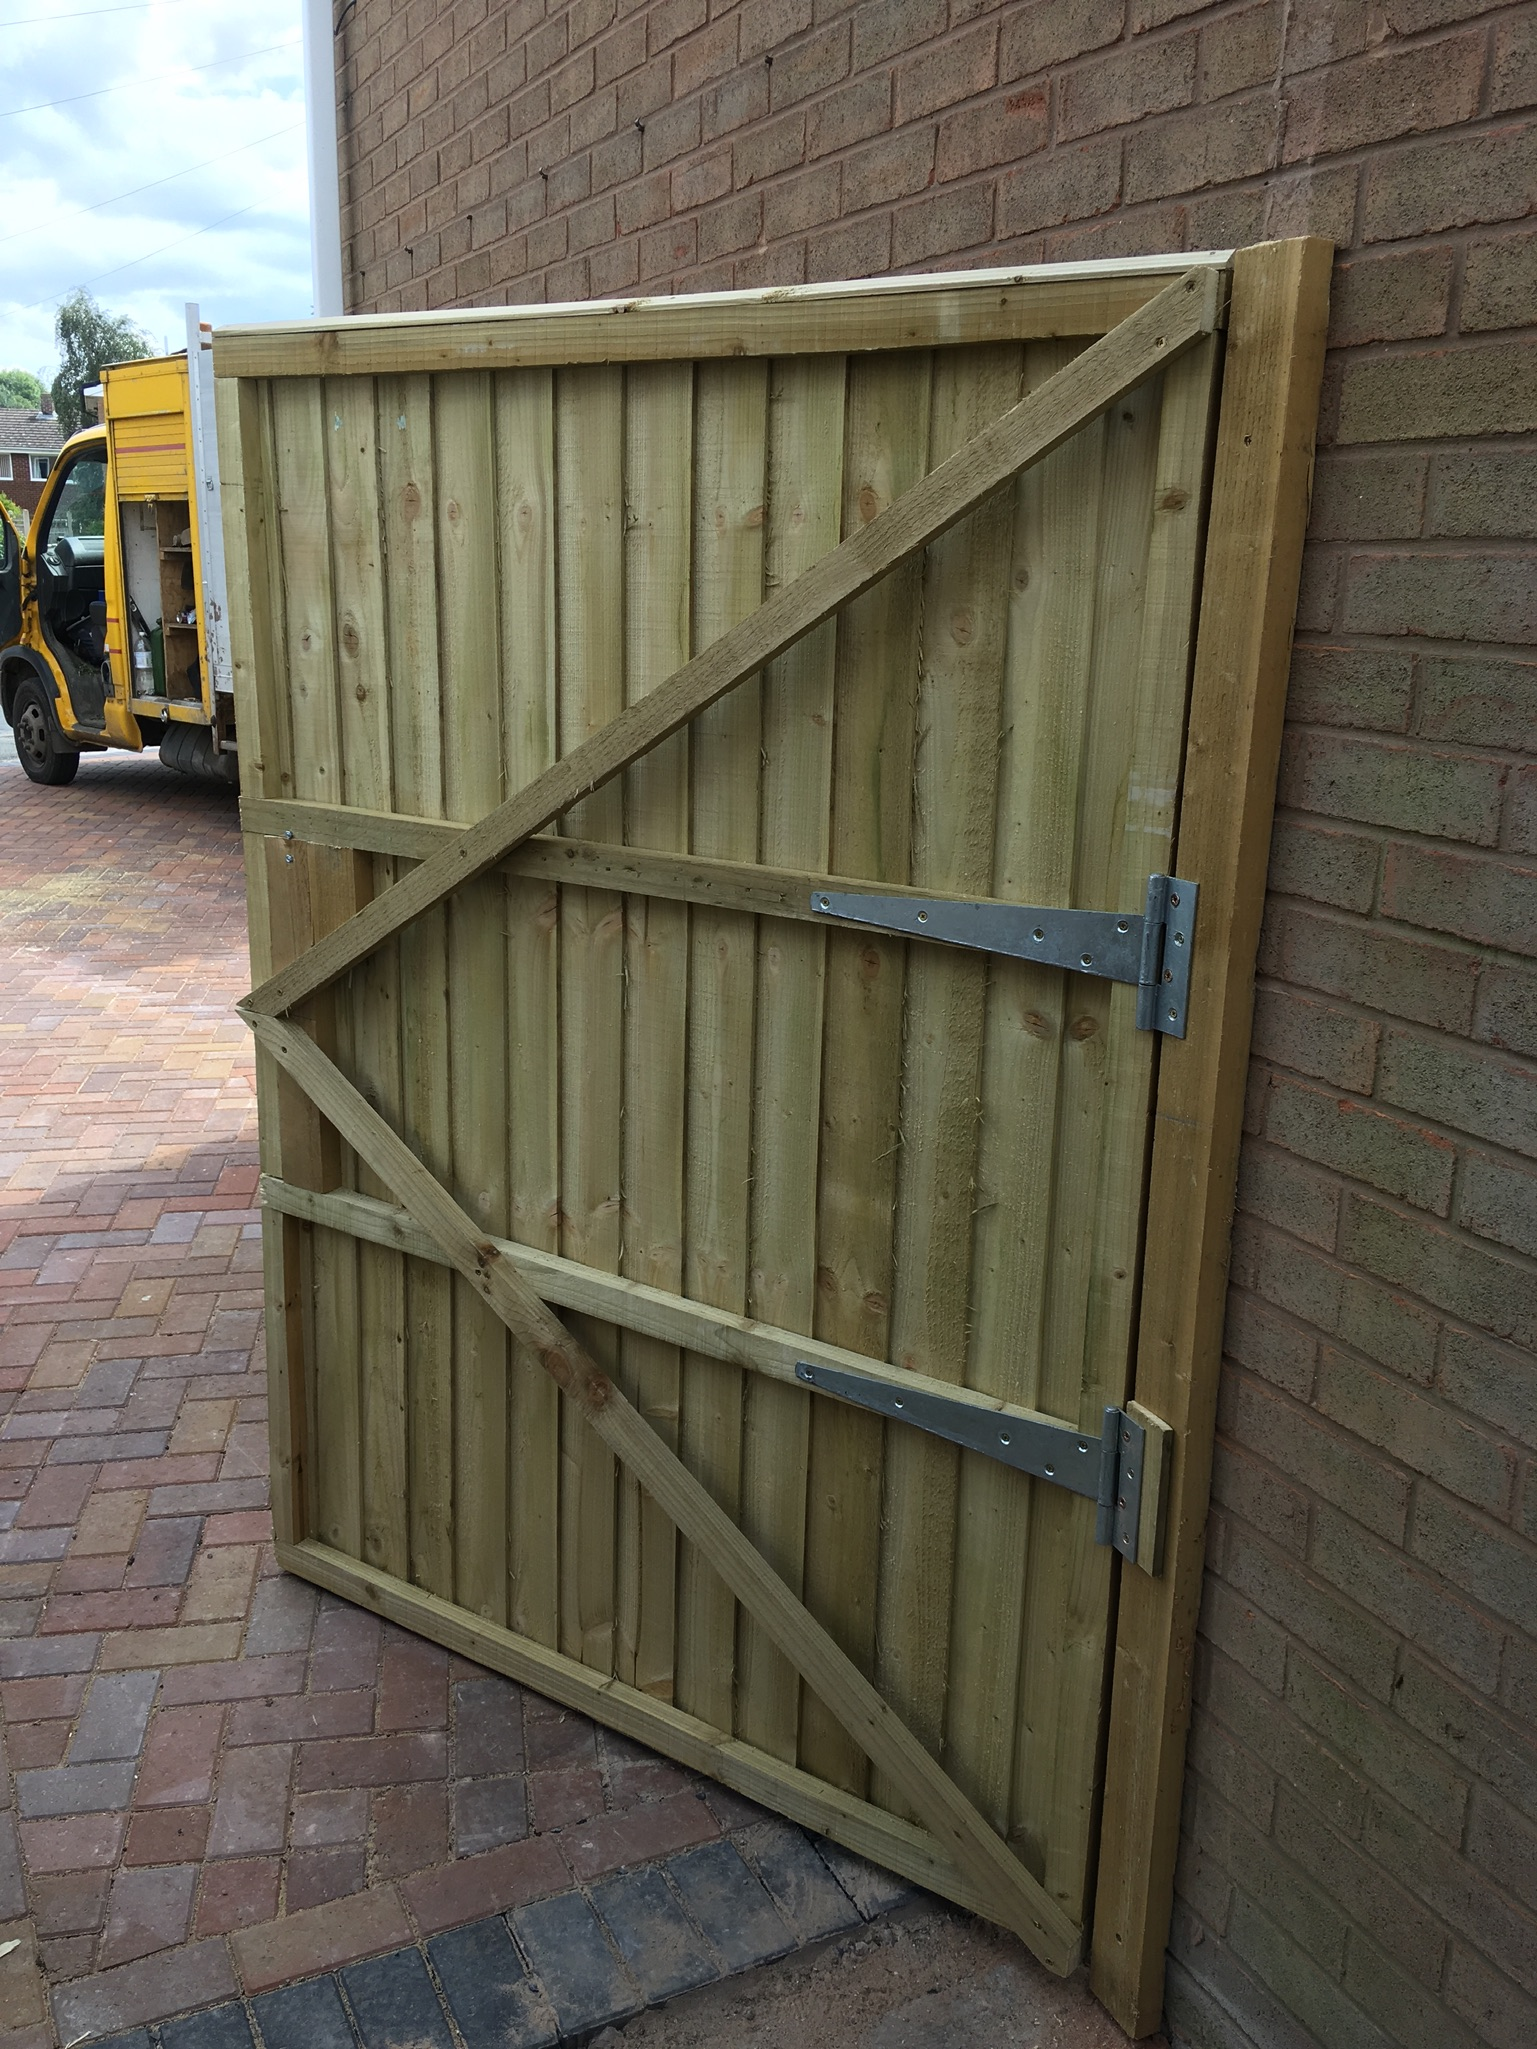 Secure side access gate installation building chirk, wrexham oswestry.JPG